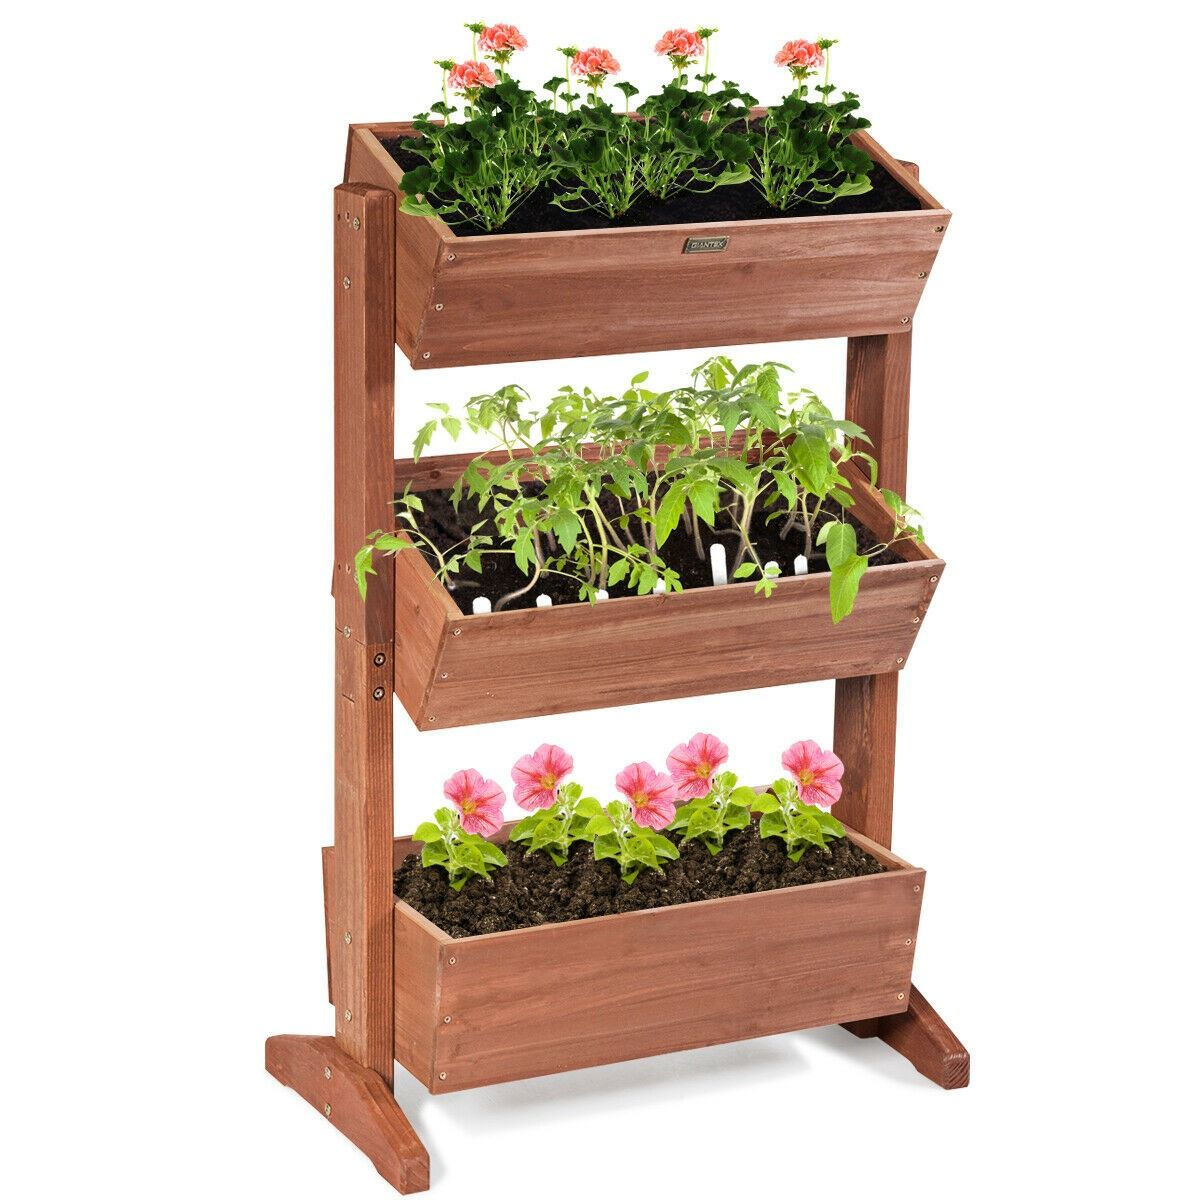 3 Tier Raised Garden Bed Vertical Freestanding Elevated Planter Raised Garden Beds Vegetable Garden Raised Beds Garden Beds